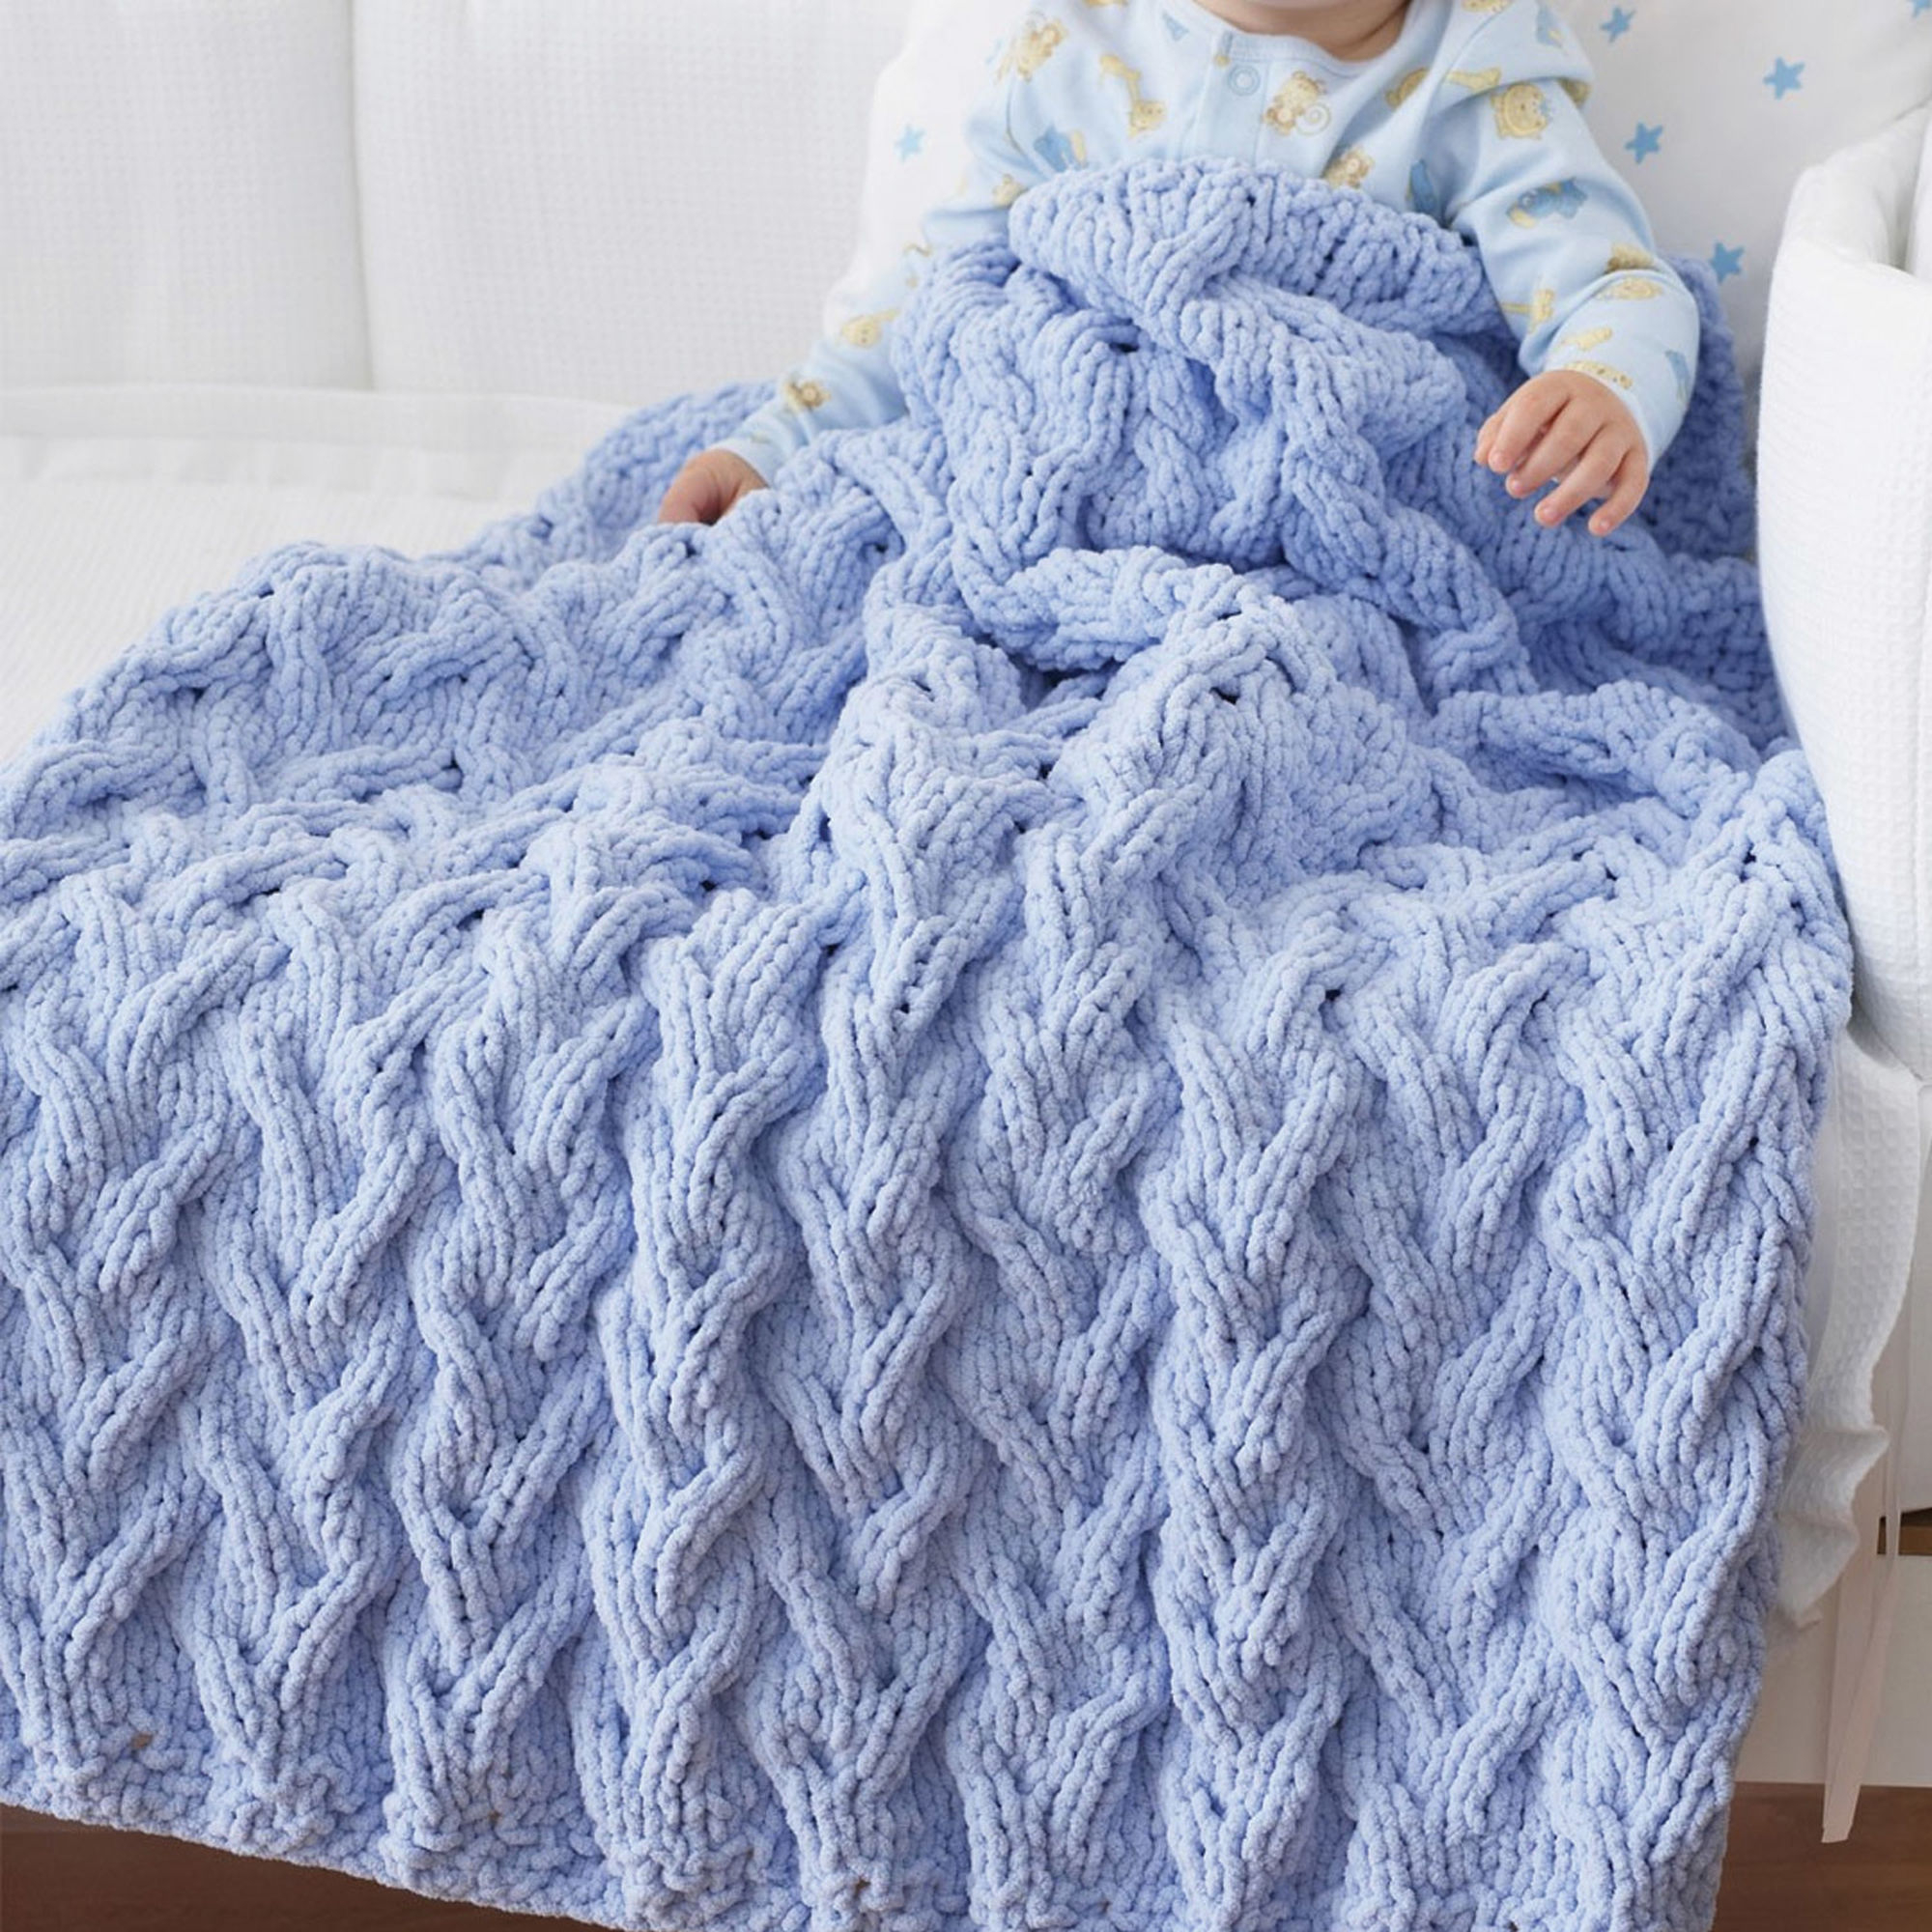 Free Knitting Patterns For Baby Blankets Lovely Cabled Ba Blanket Free Knitting Pattern